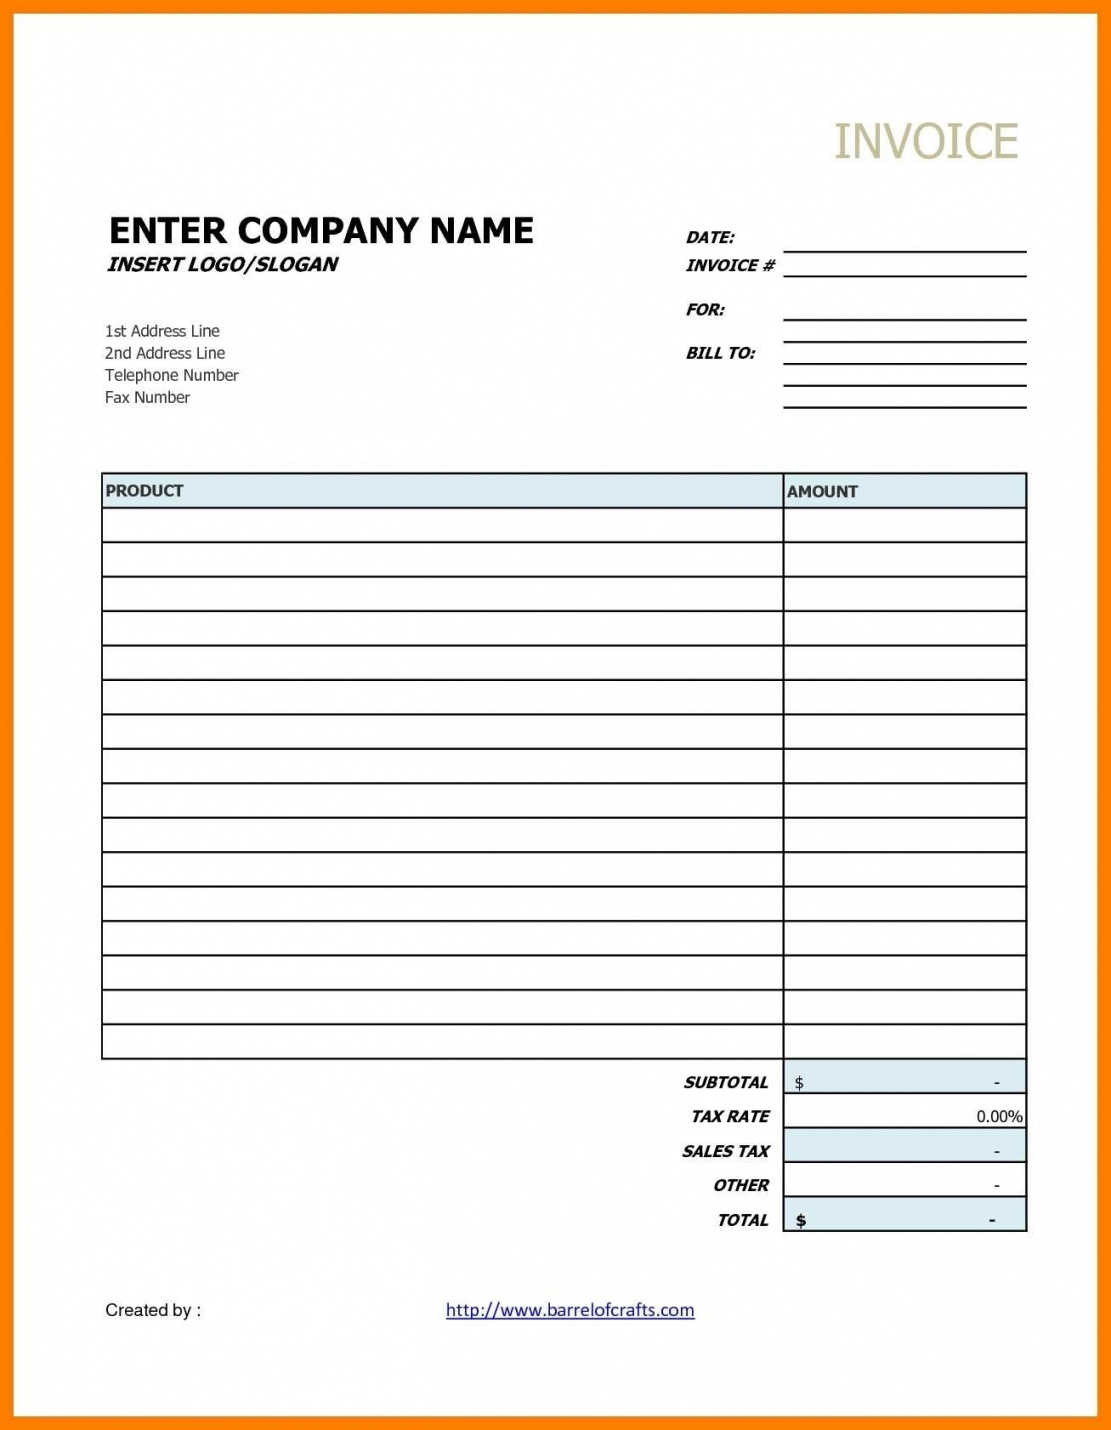 Blank Invoice Template Google Docs | Spreadsheet Collections Blank Invoice Template Google Sheets